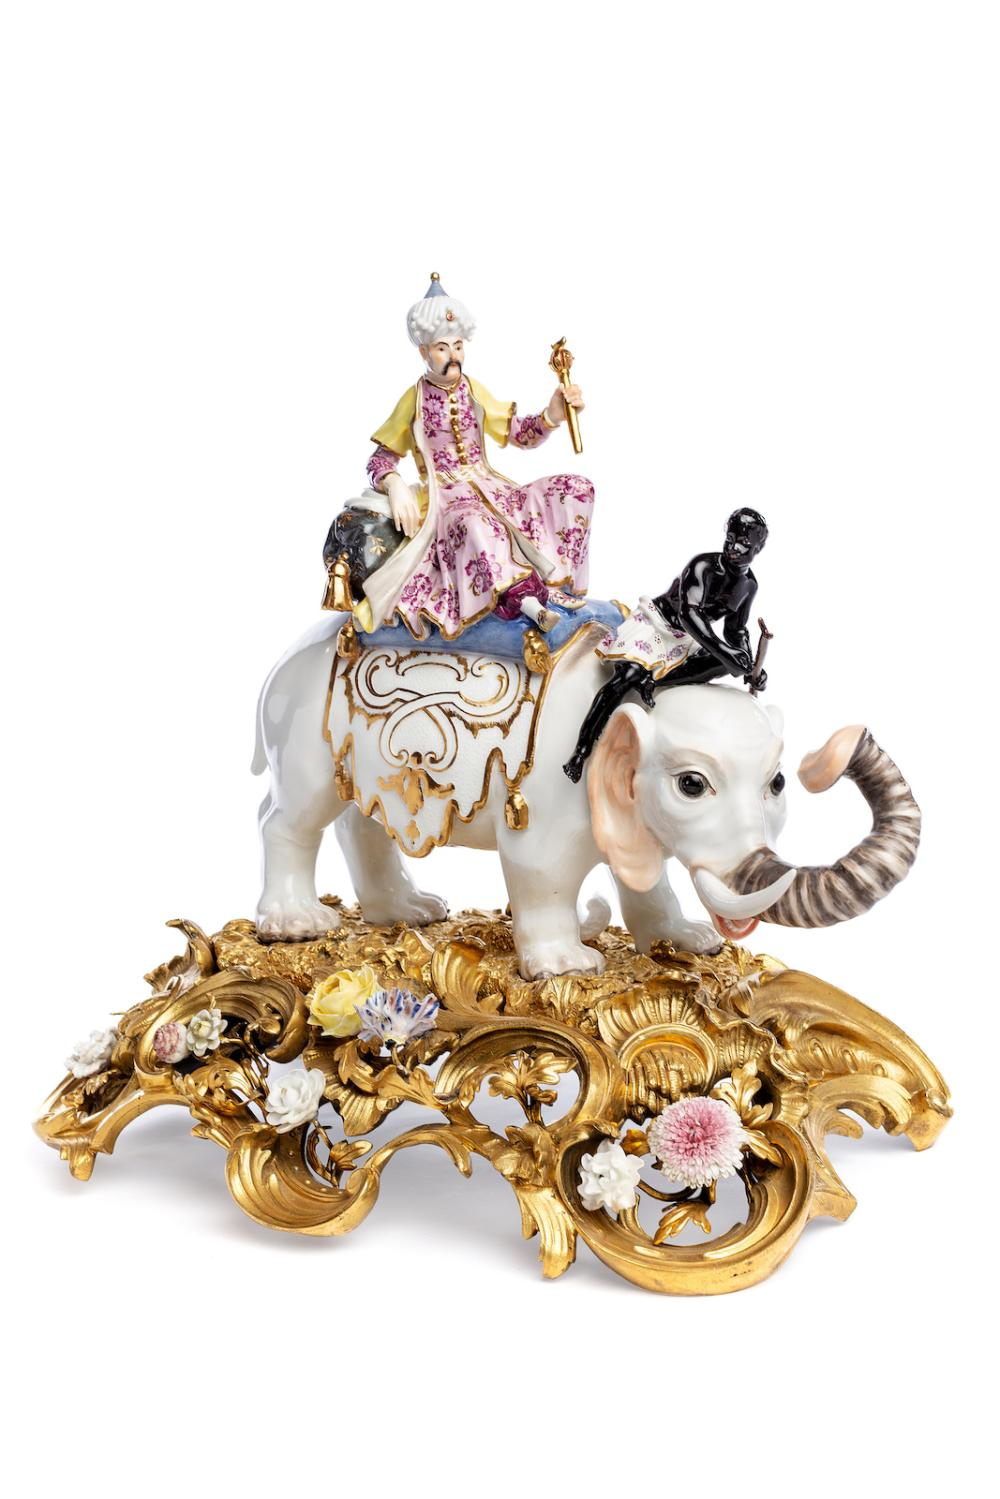 "Very magnificent porcelain group ""Sultan on Elephant"" Meissen 1741-49 